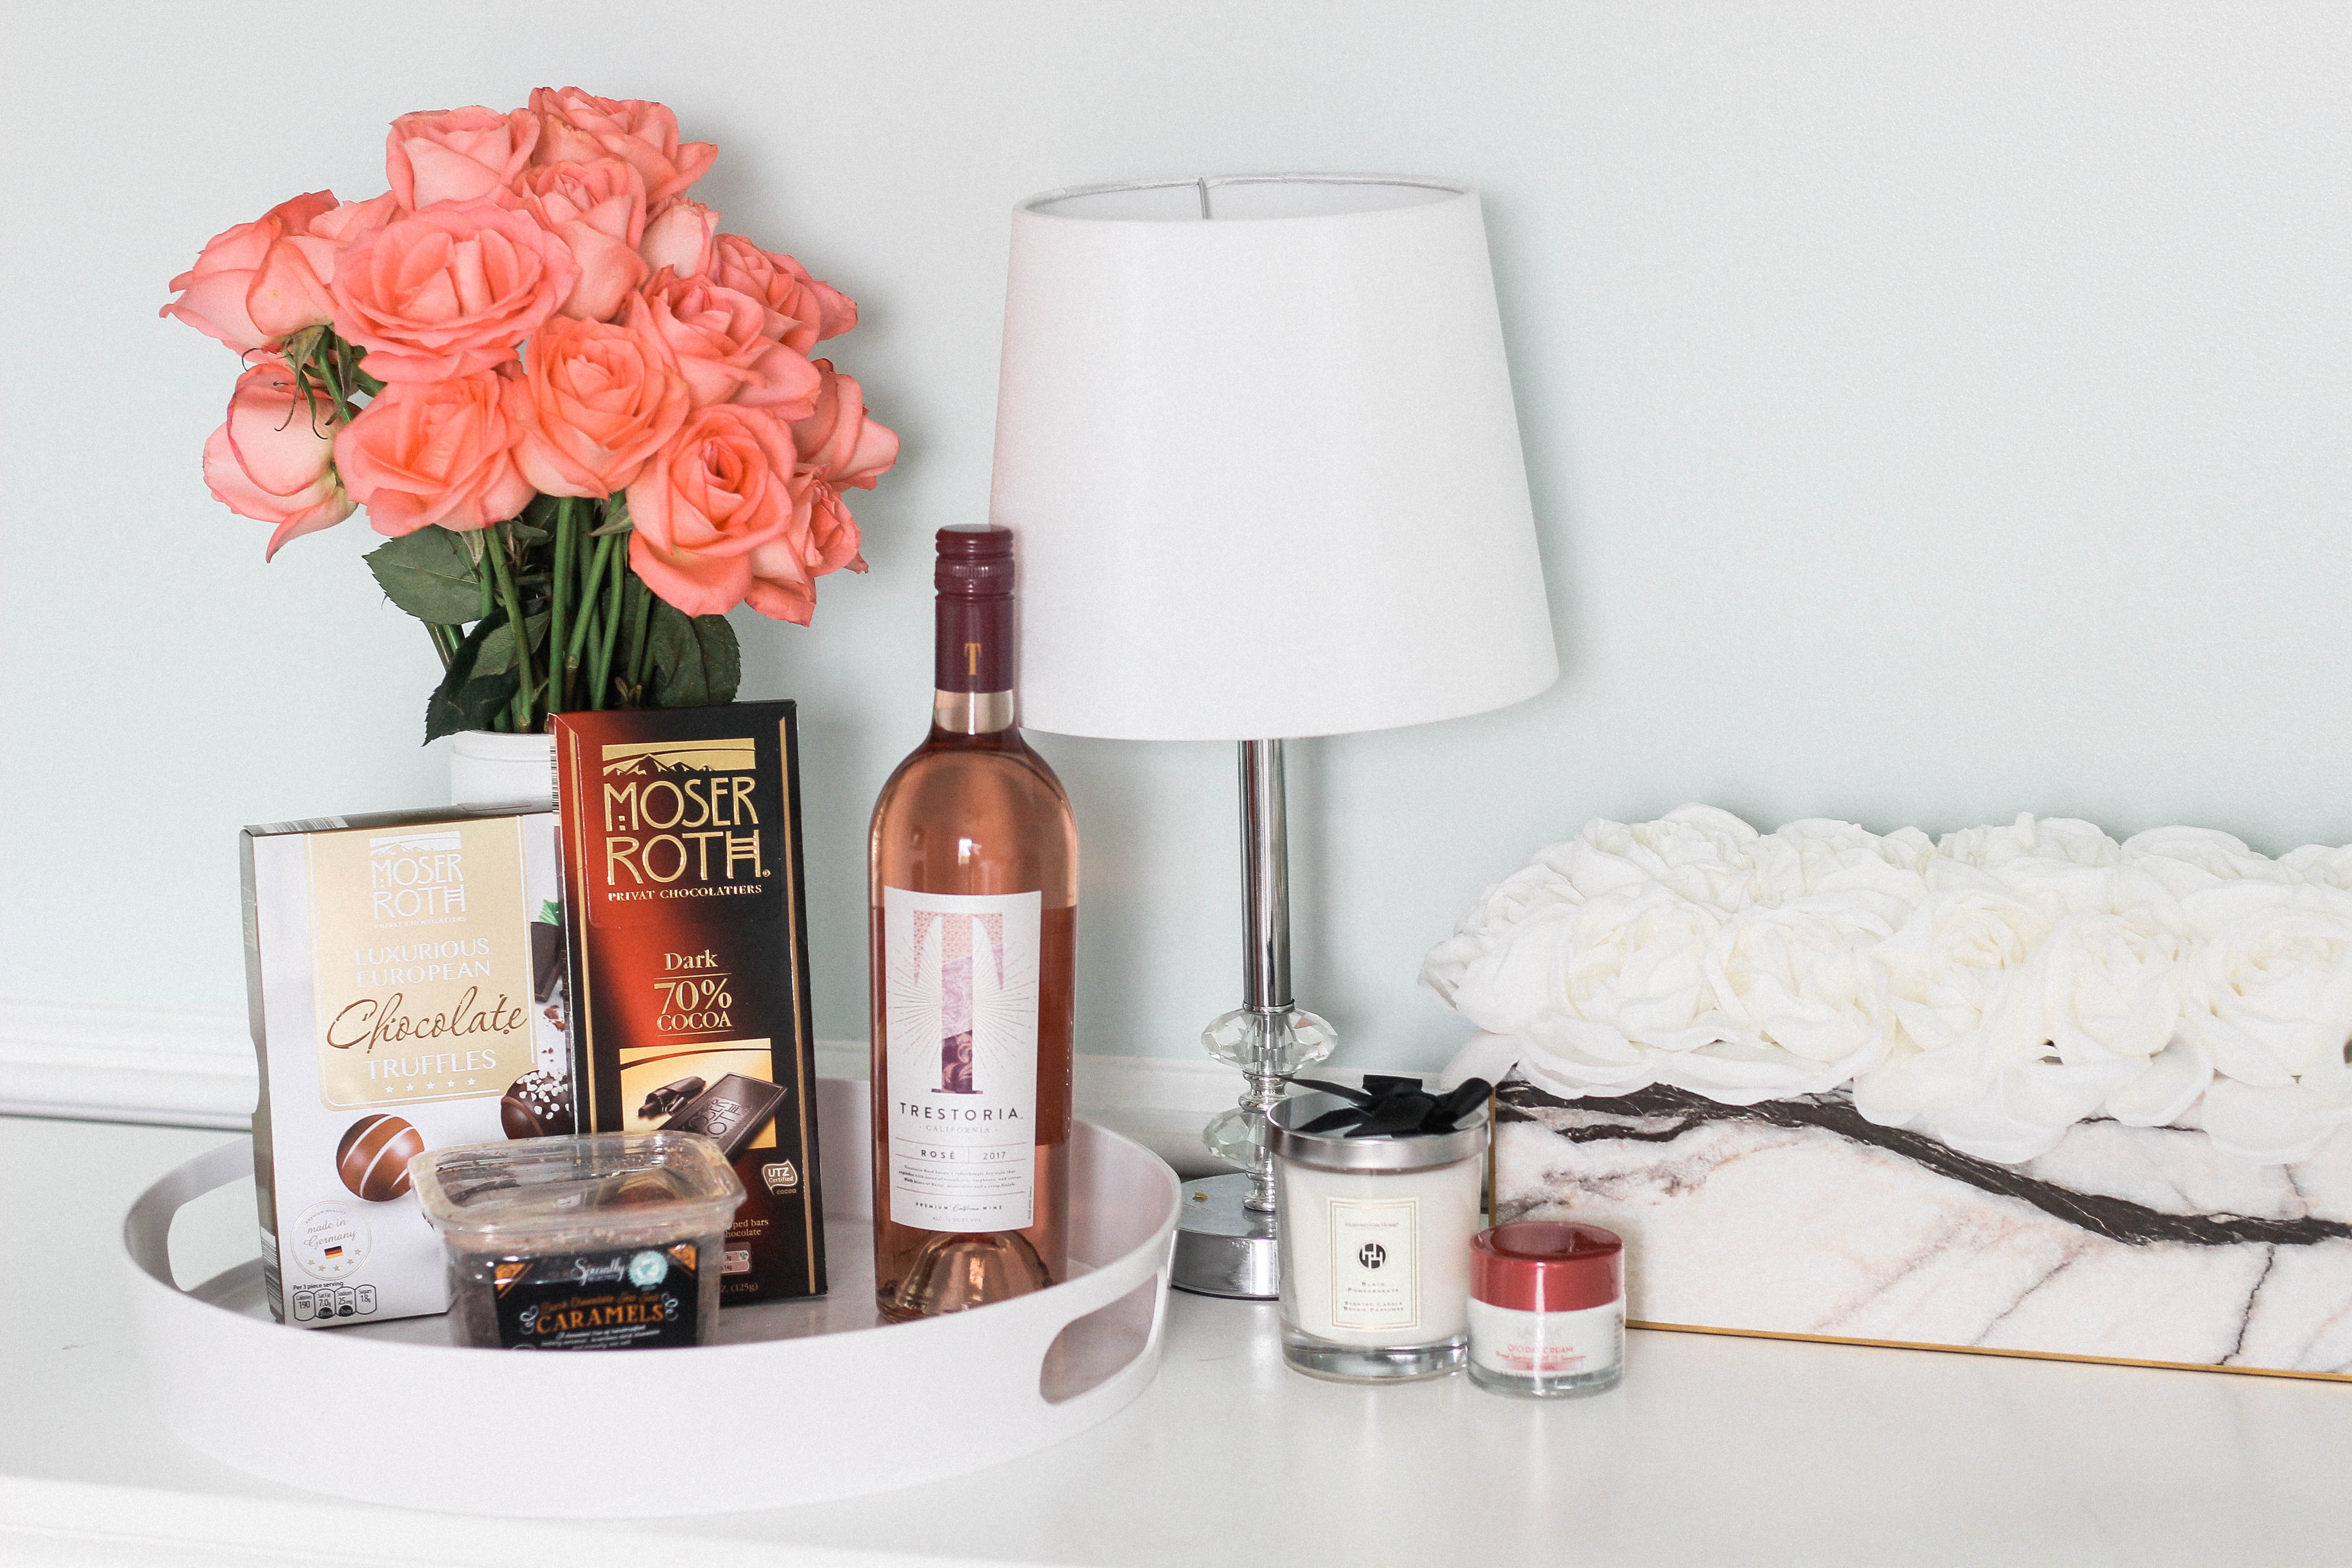 Variety of mothers day gift ideas including wine and chocolate.